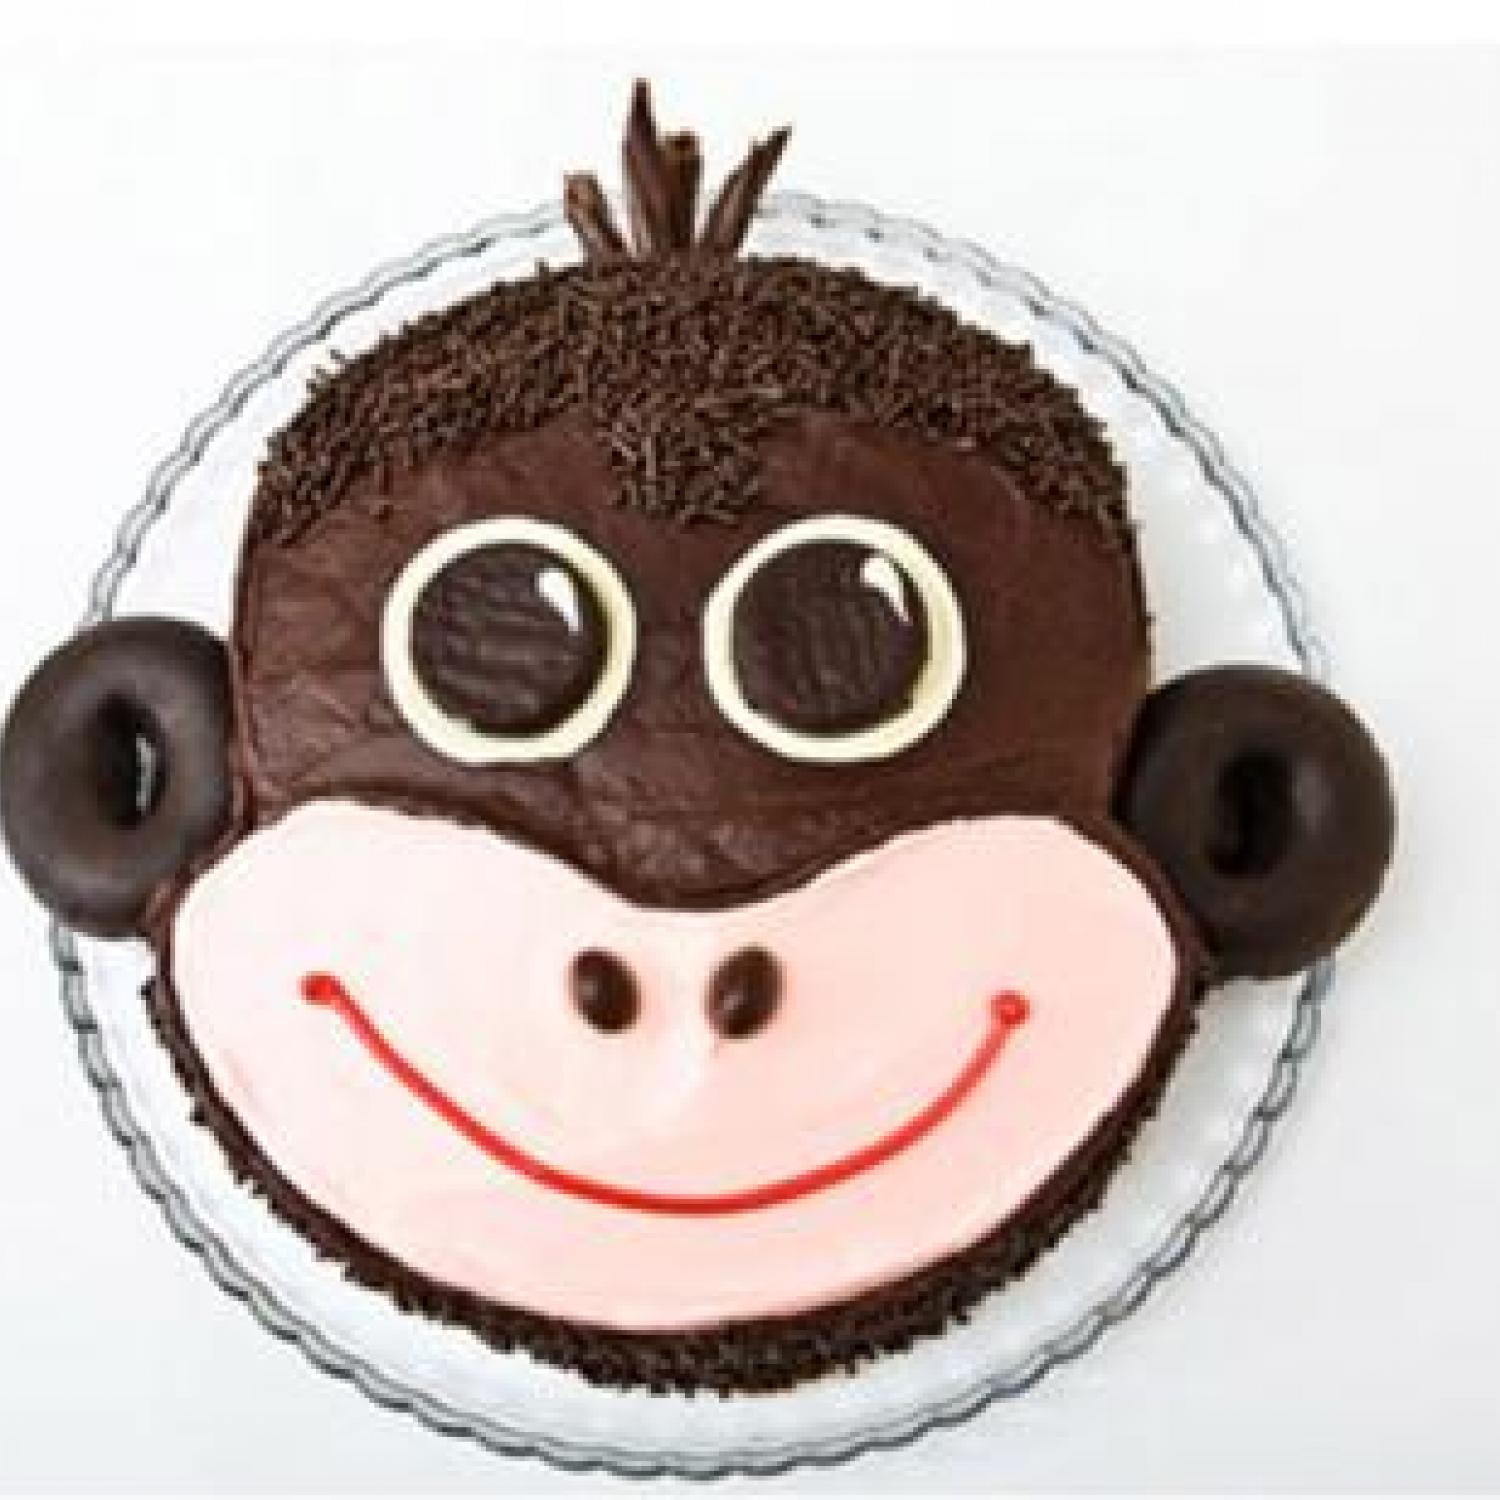 Easy To Make Monkey Cake Video